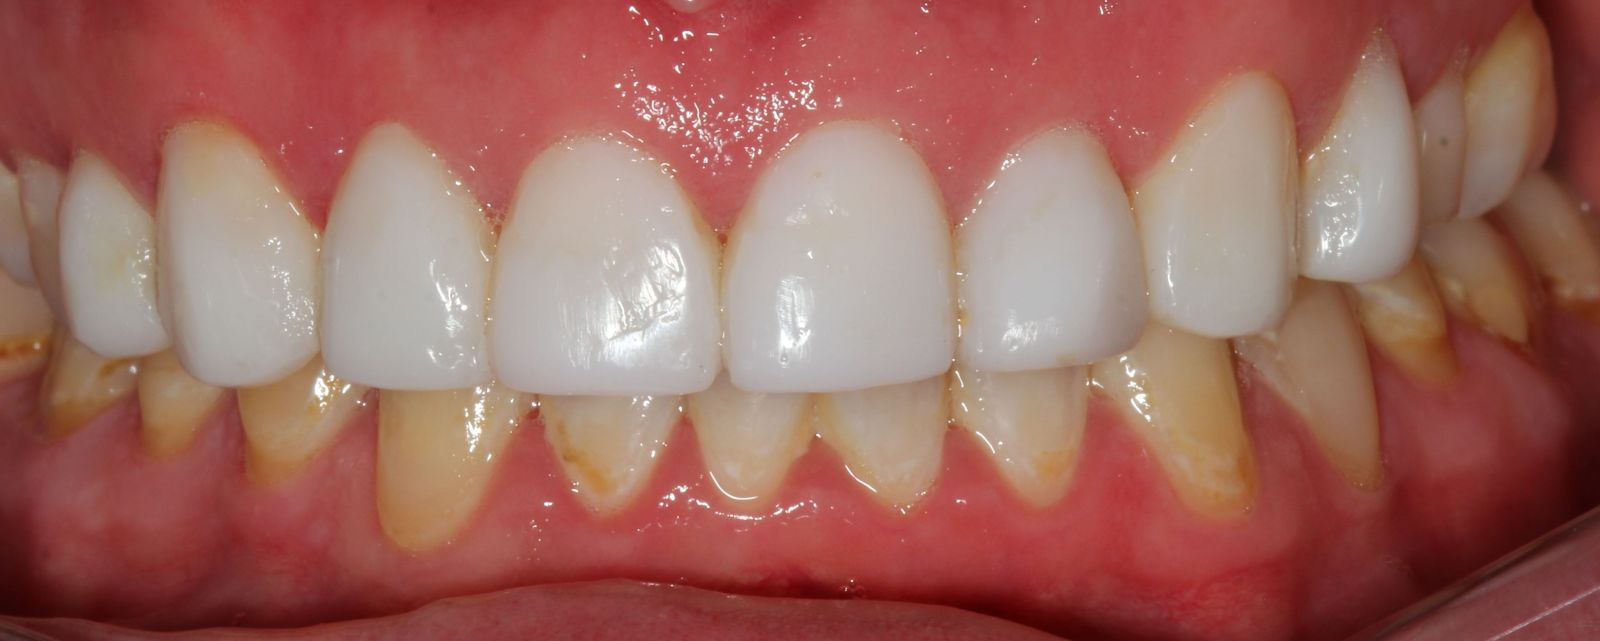 After a smile makeover with Resin veneers. Payment plans available